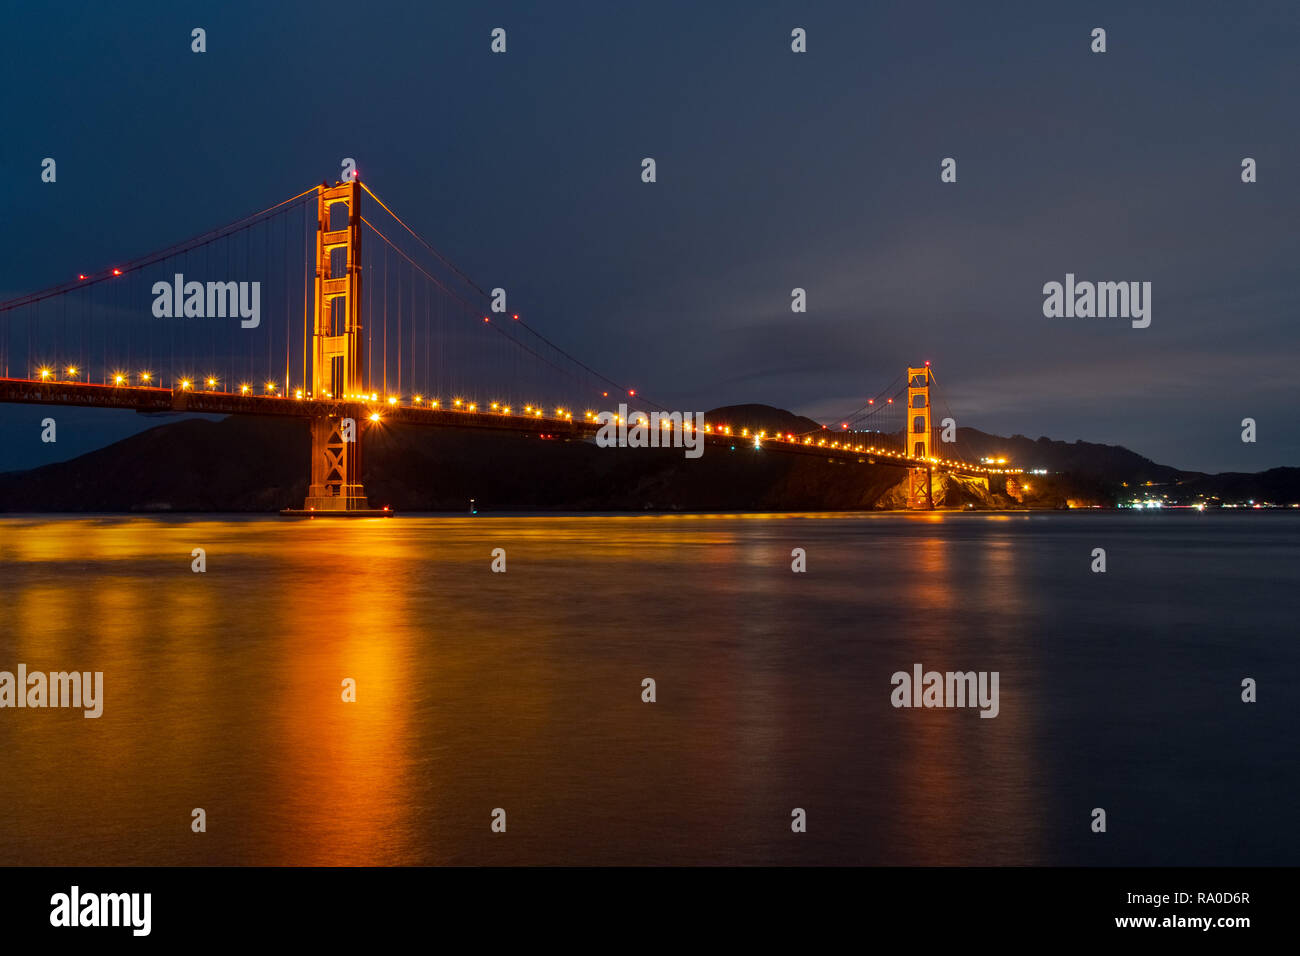 Nighttime view of Golden Gate Bridge reflected in the blurred water surface of San Francisco bay, California - Stock Image